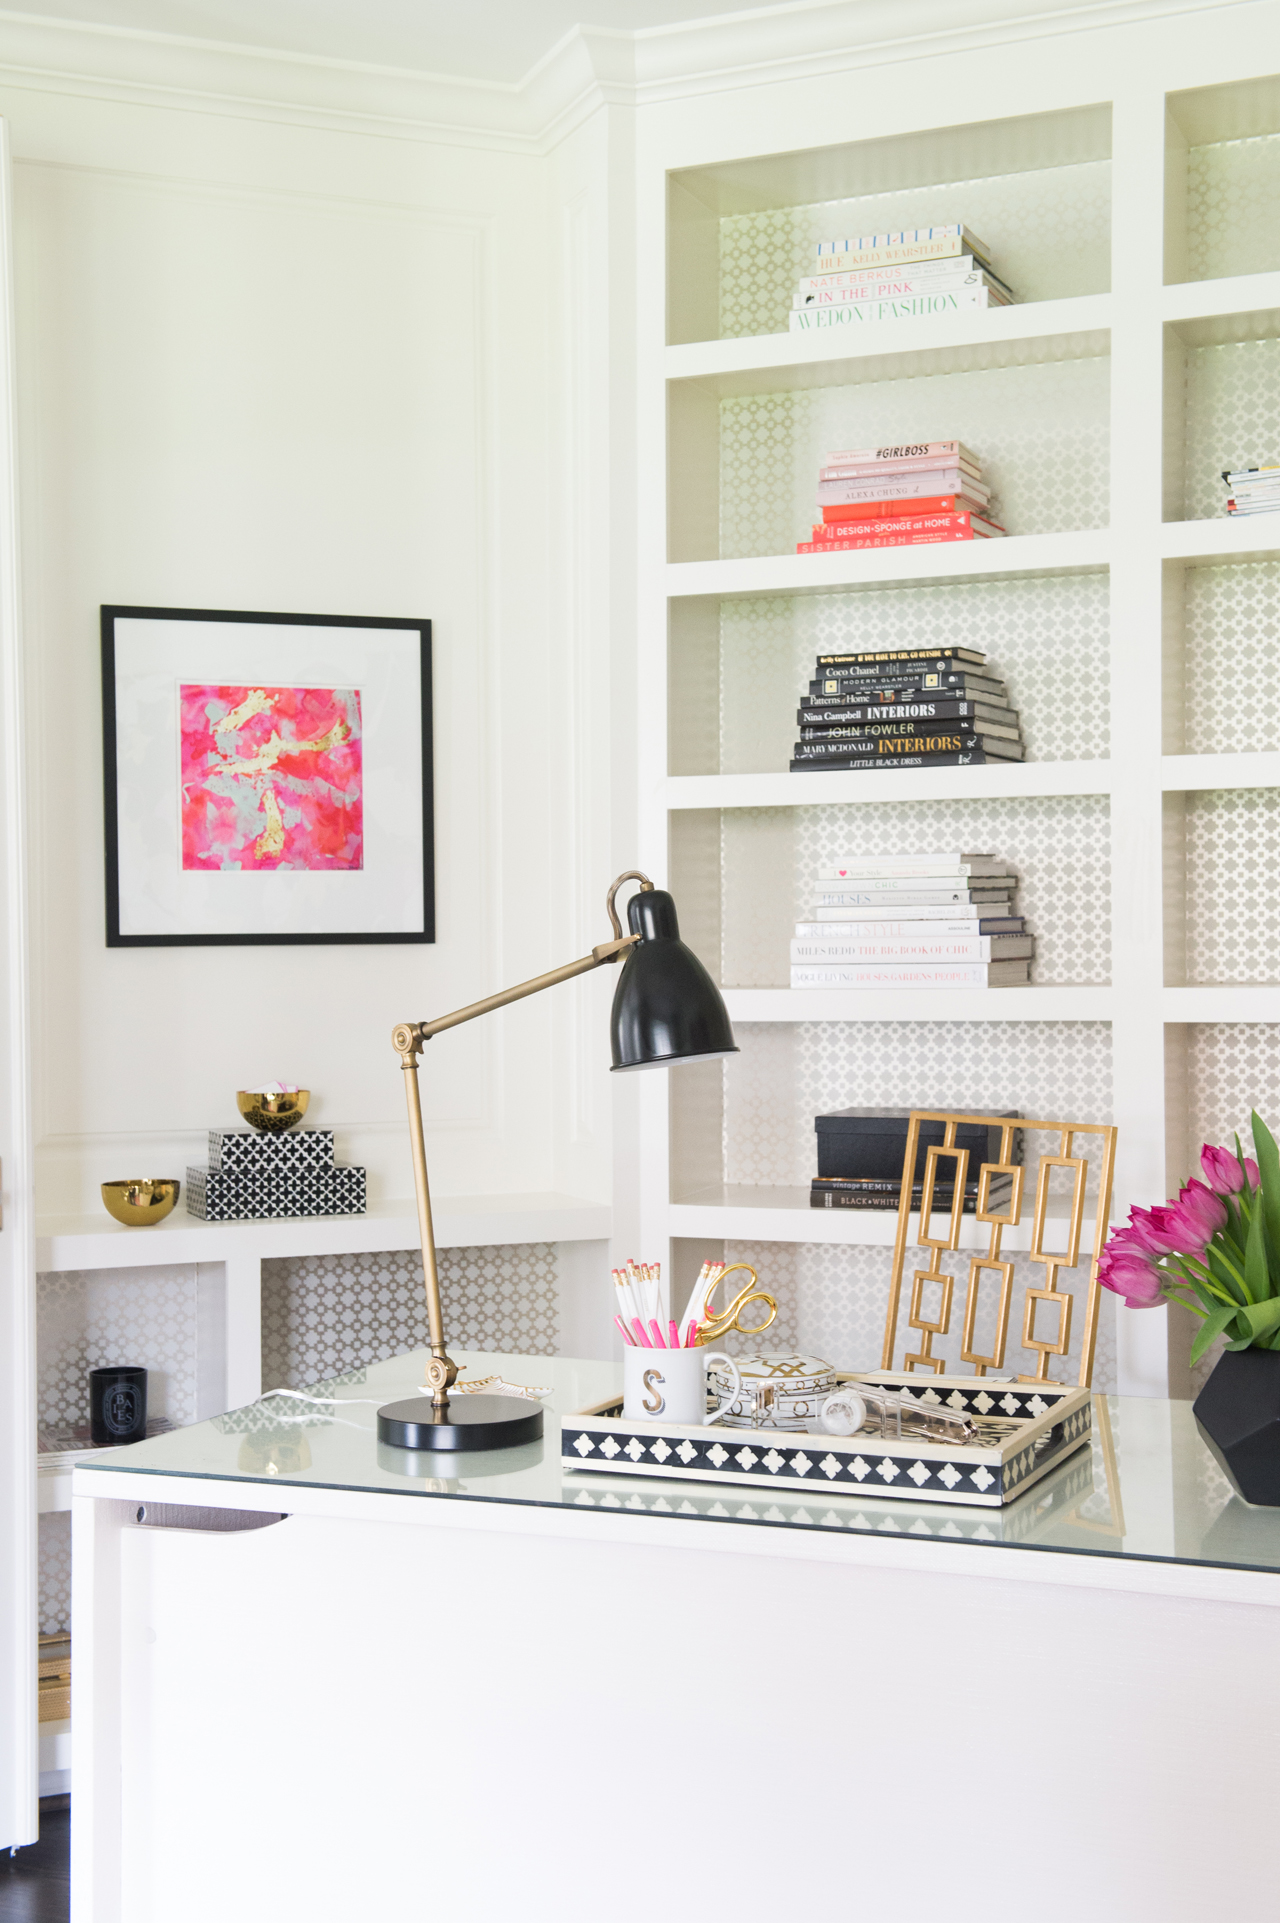 Styling By Cline Rose Interior Design; Photos By Abby Jiu.